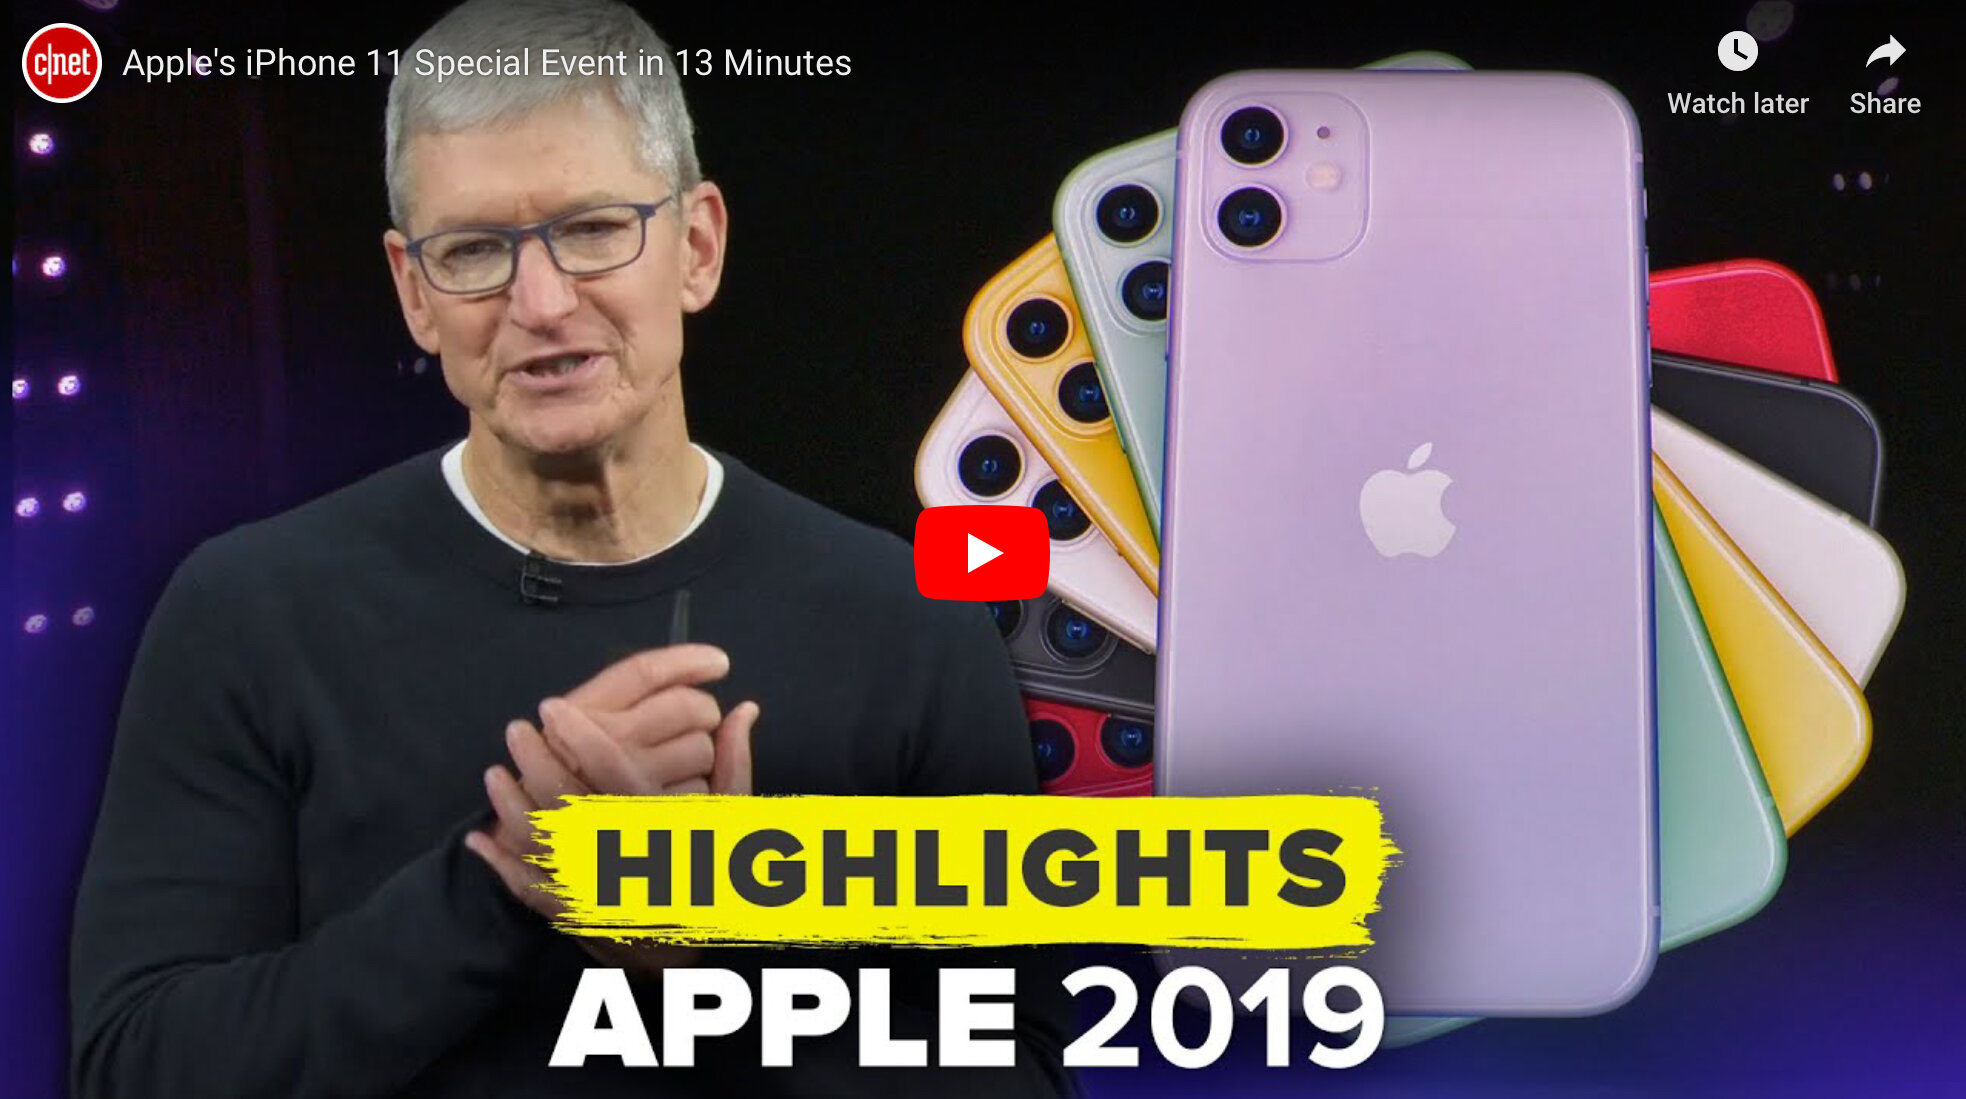 Copy of Apple's consumer show-n-tell